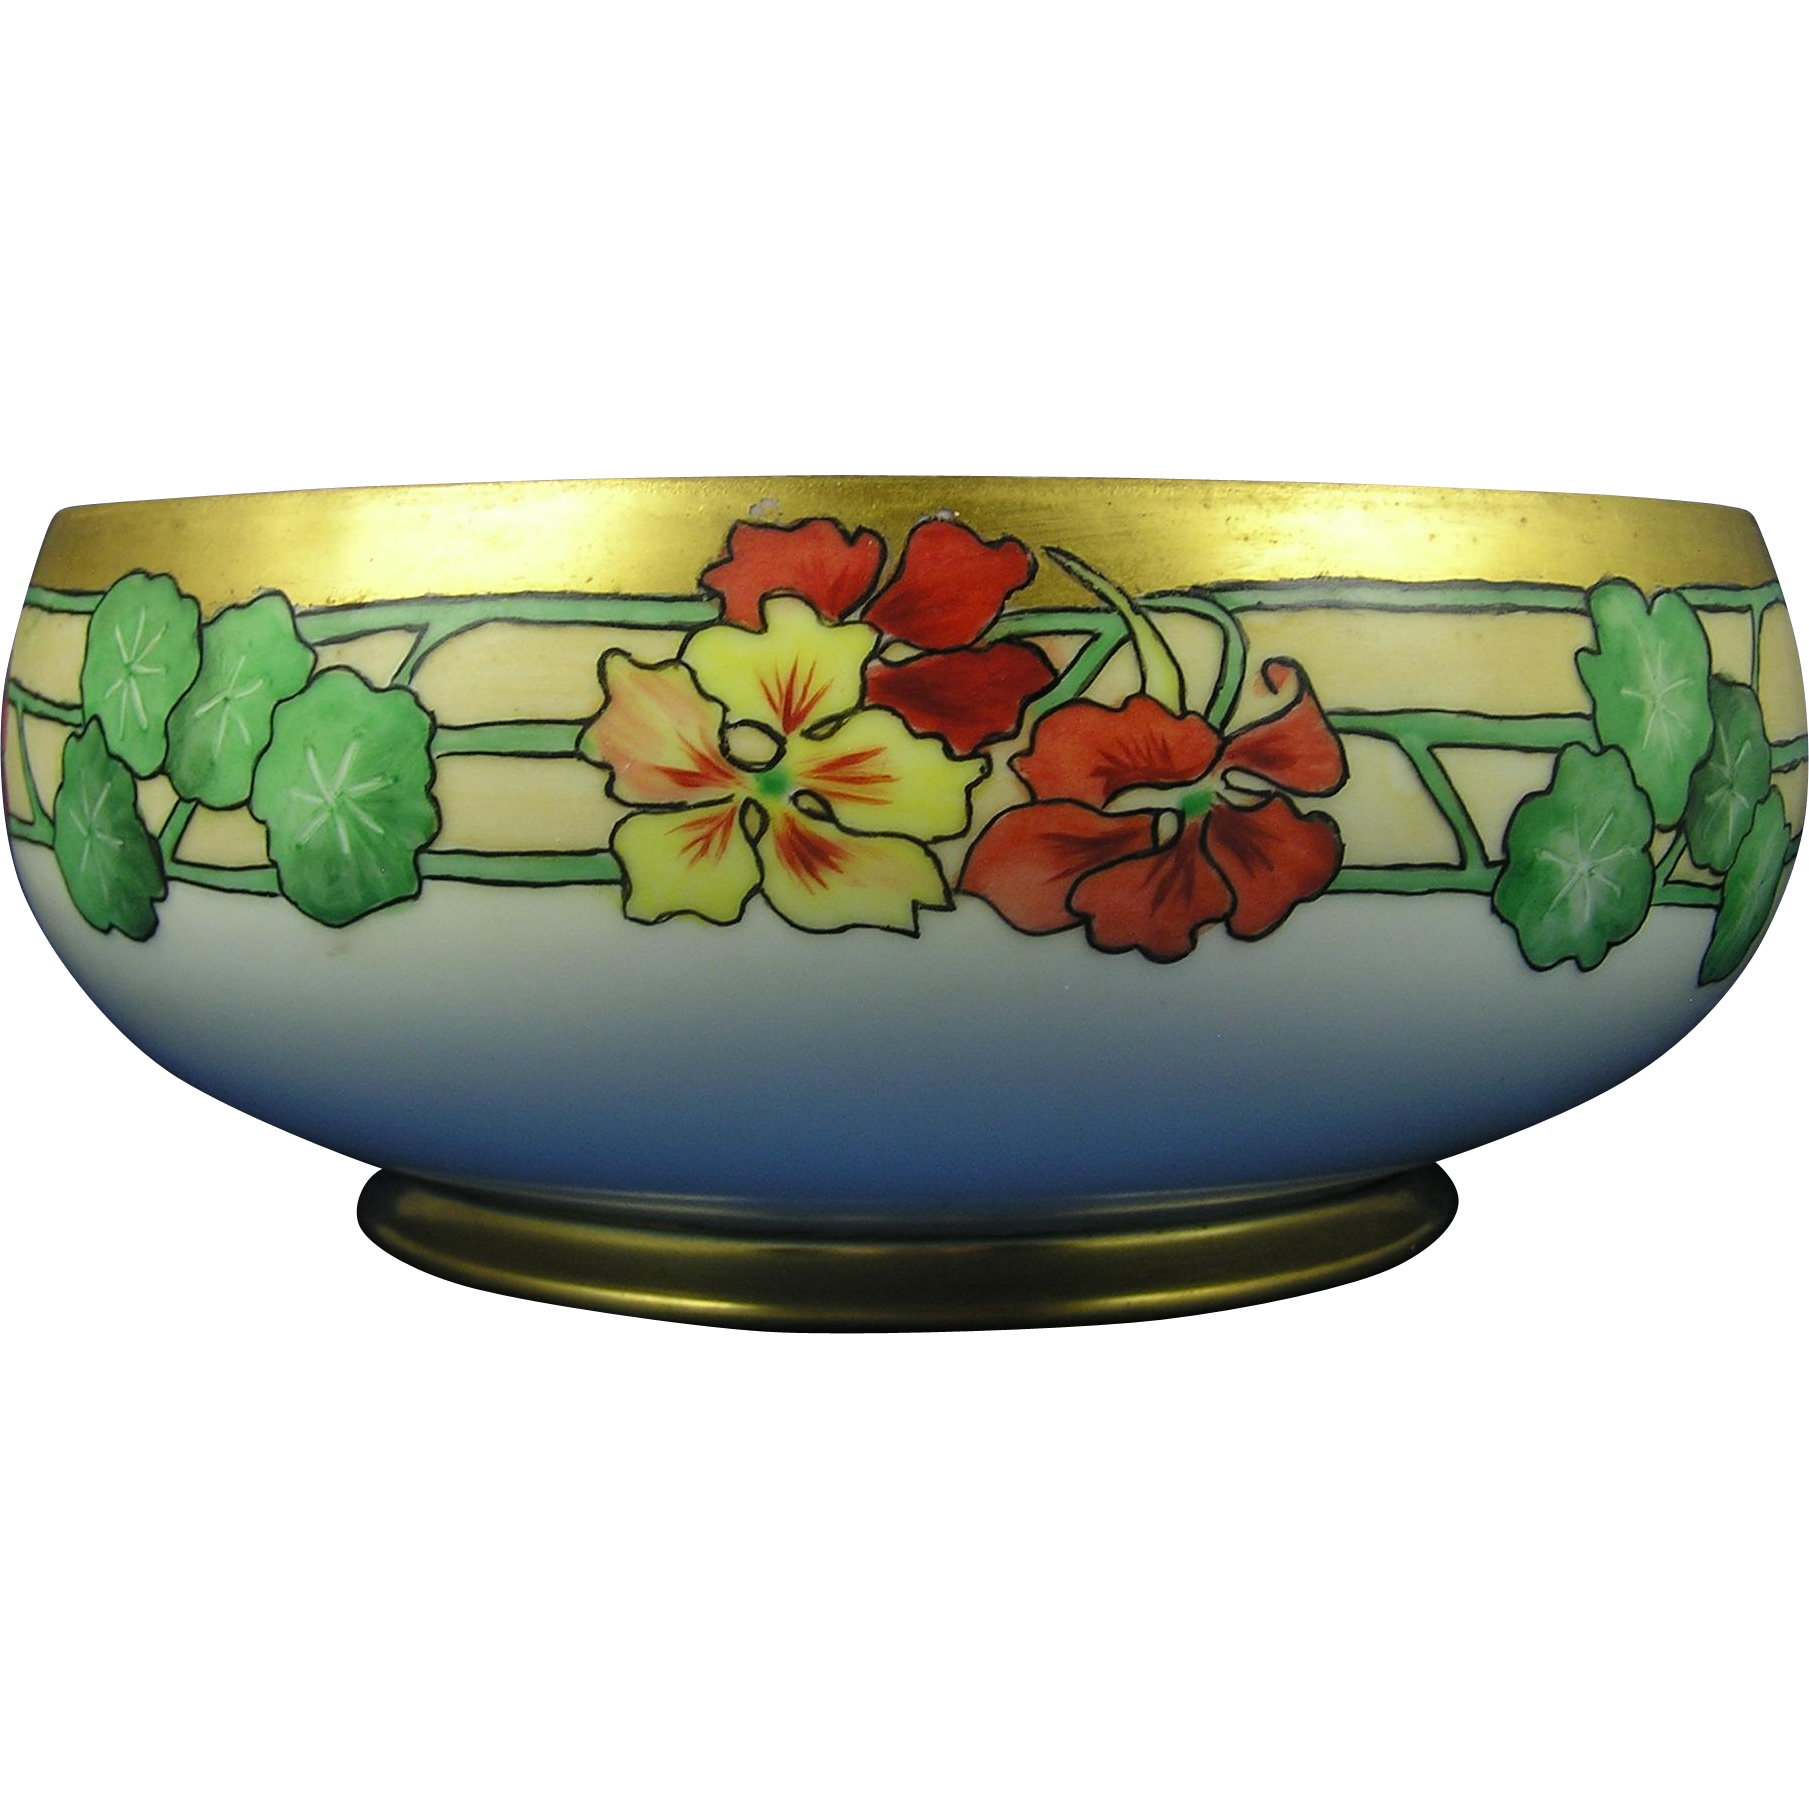 HC Royal Bavaria Arts & Crafts Nasturtium Motif Centerpiece Bowl (c.1910-1930)